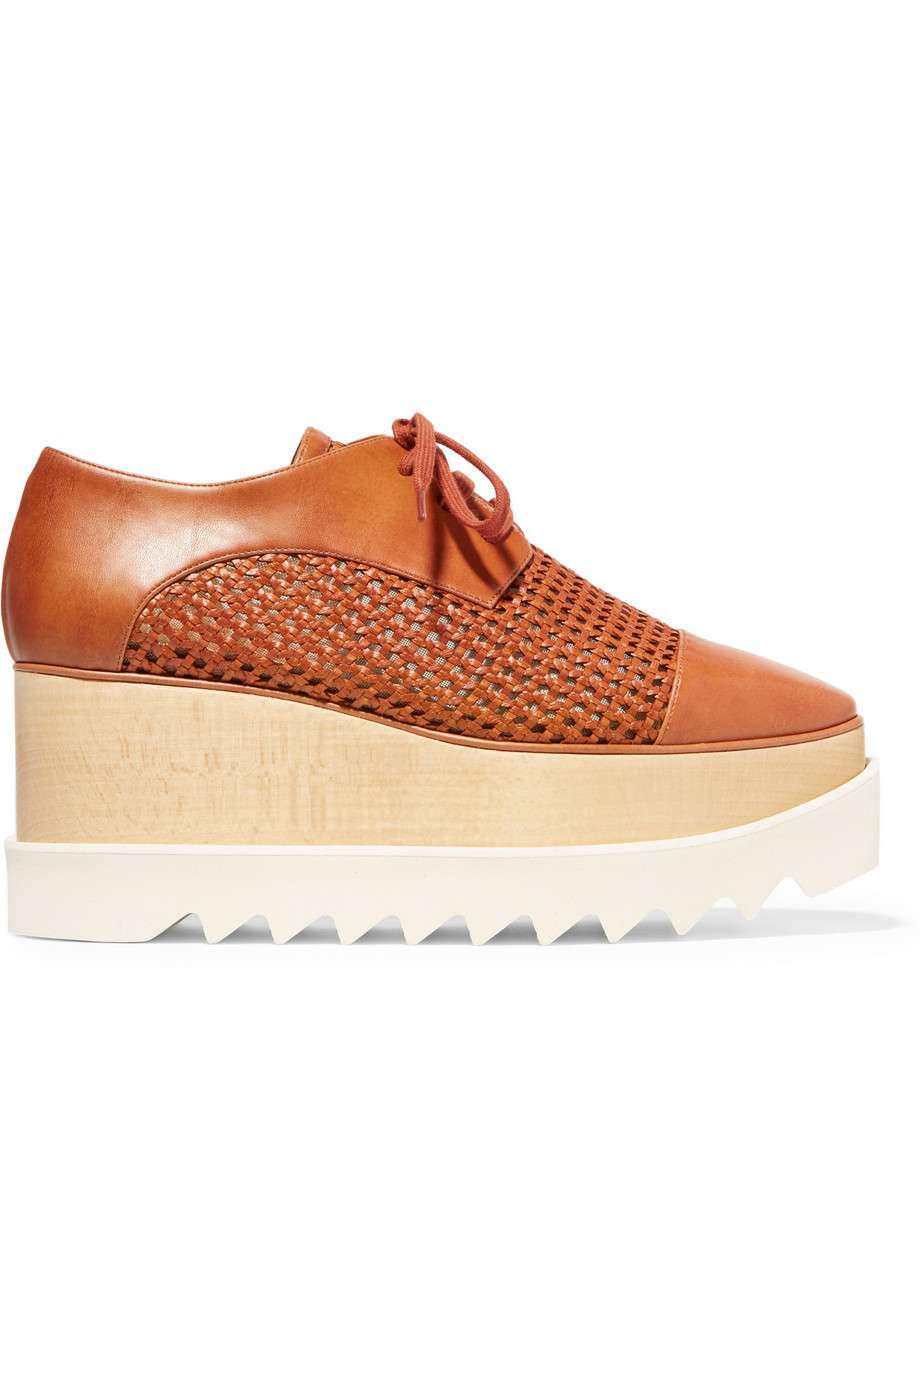 Oxford Stella McCartney laser cut